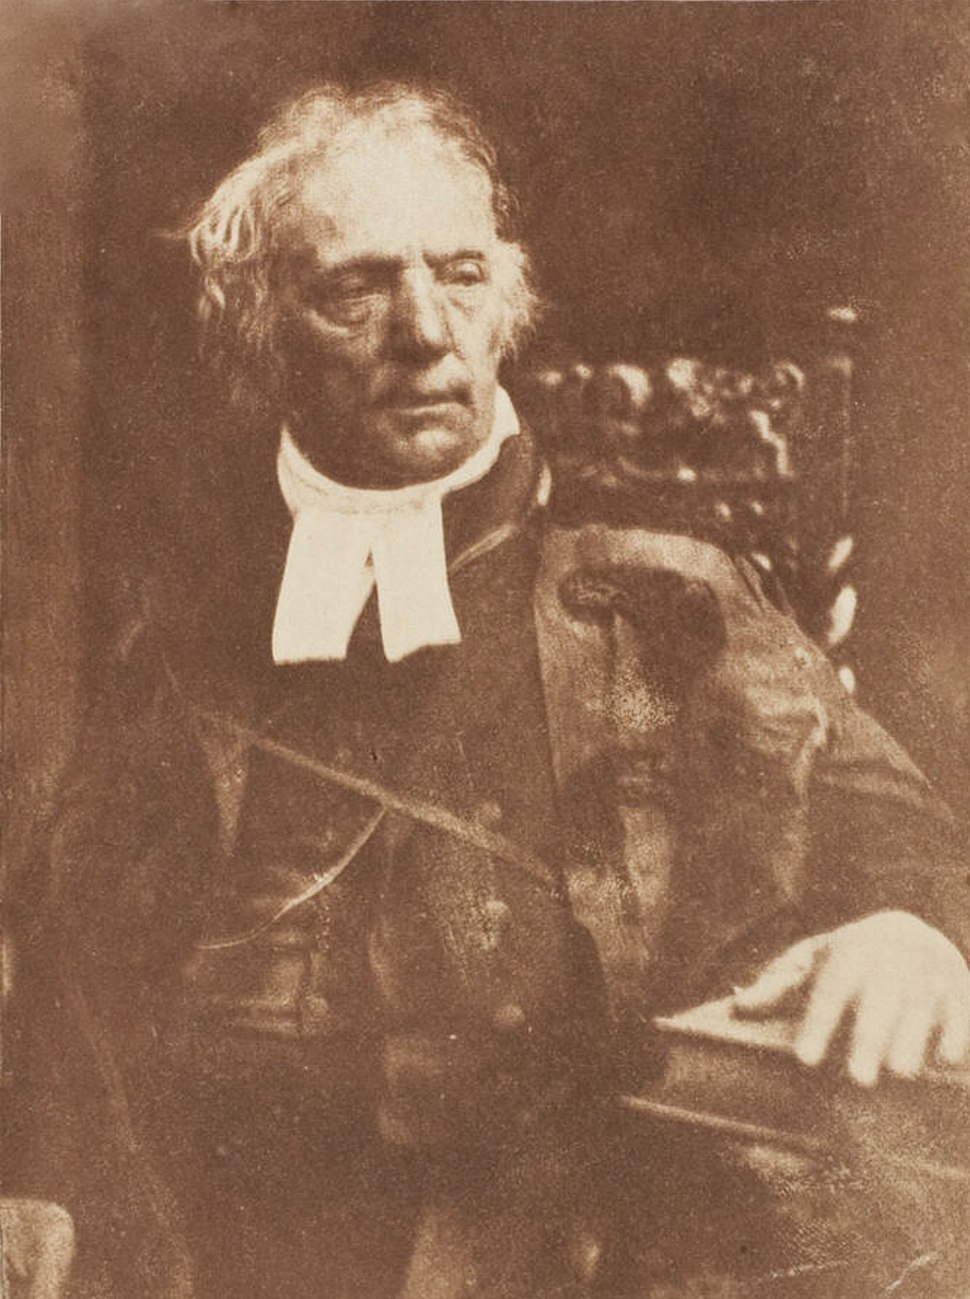 Thomas Chalmers by David Octavius Hill, c1843-47